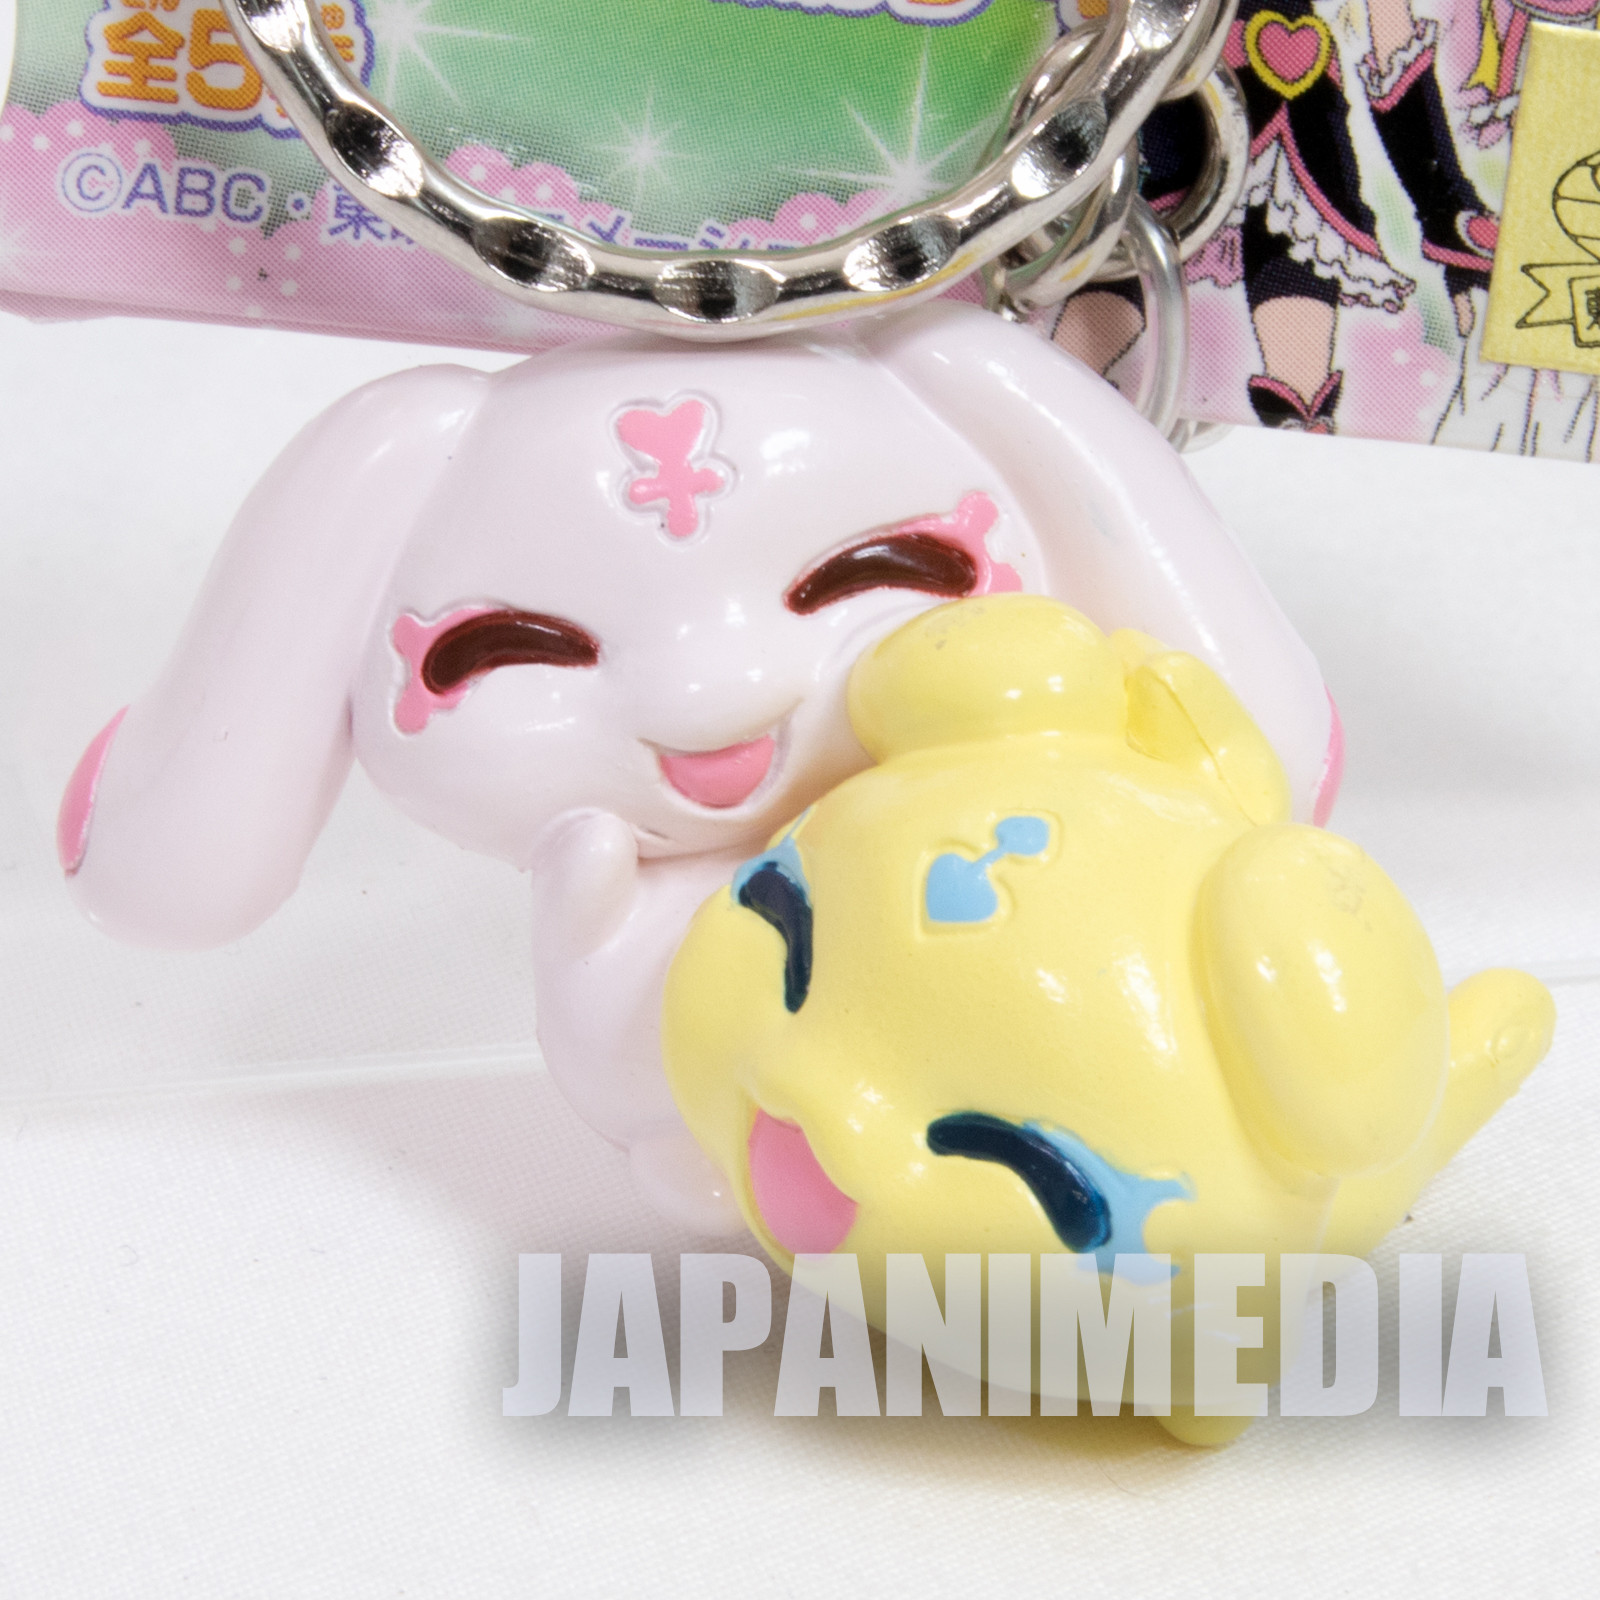 Futari wa Pretty Cure Mepple & Mipple Figure Keychain JAPAN ANIME